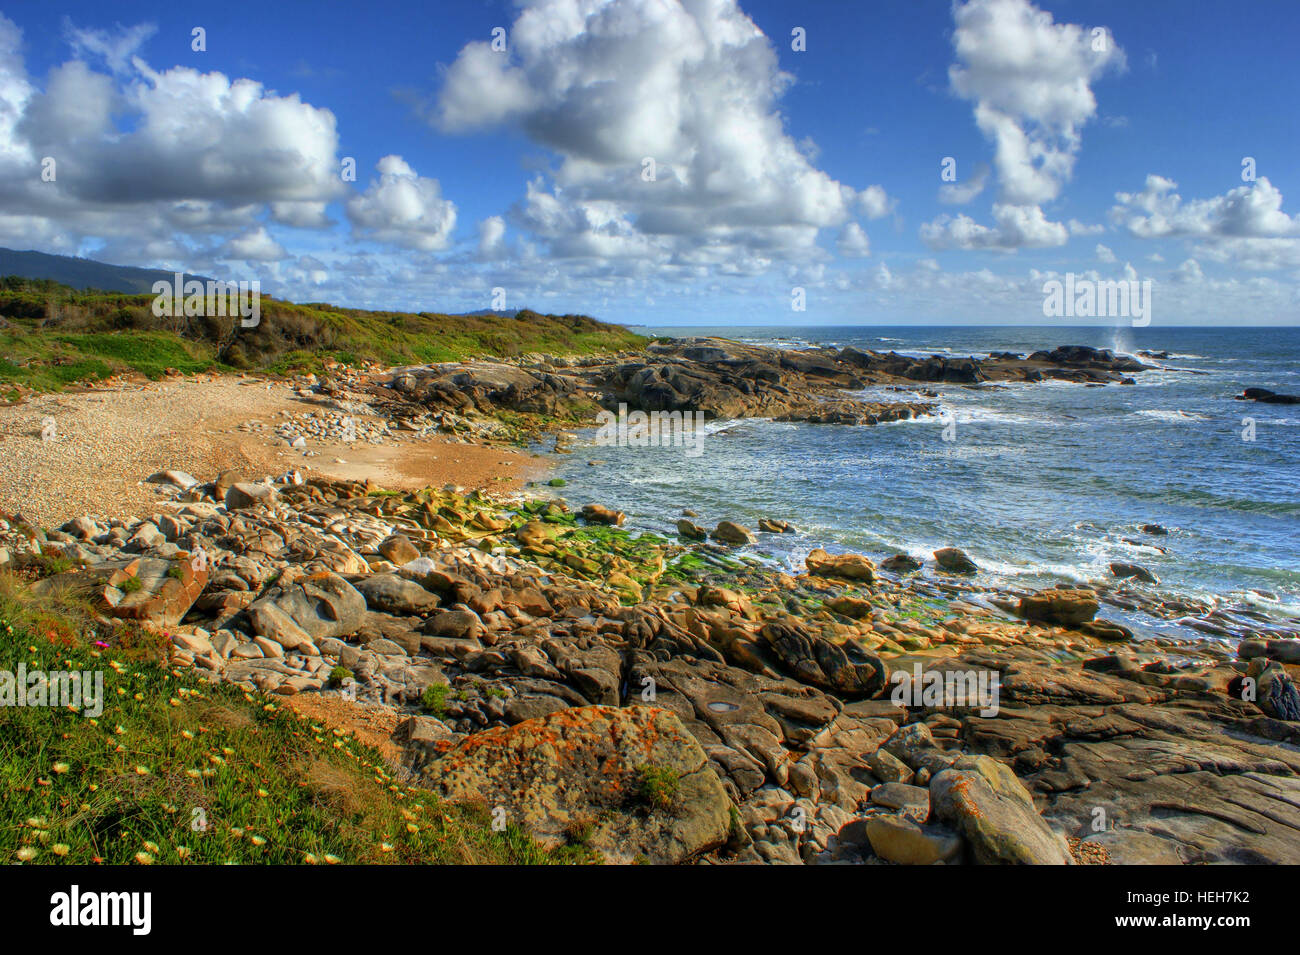 Rock beach in Vila Praia de Ancora, north of Portugal - Stock Image